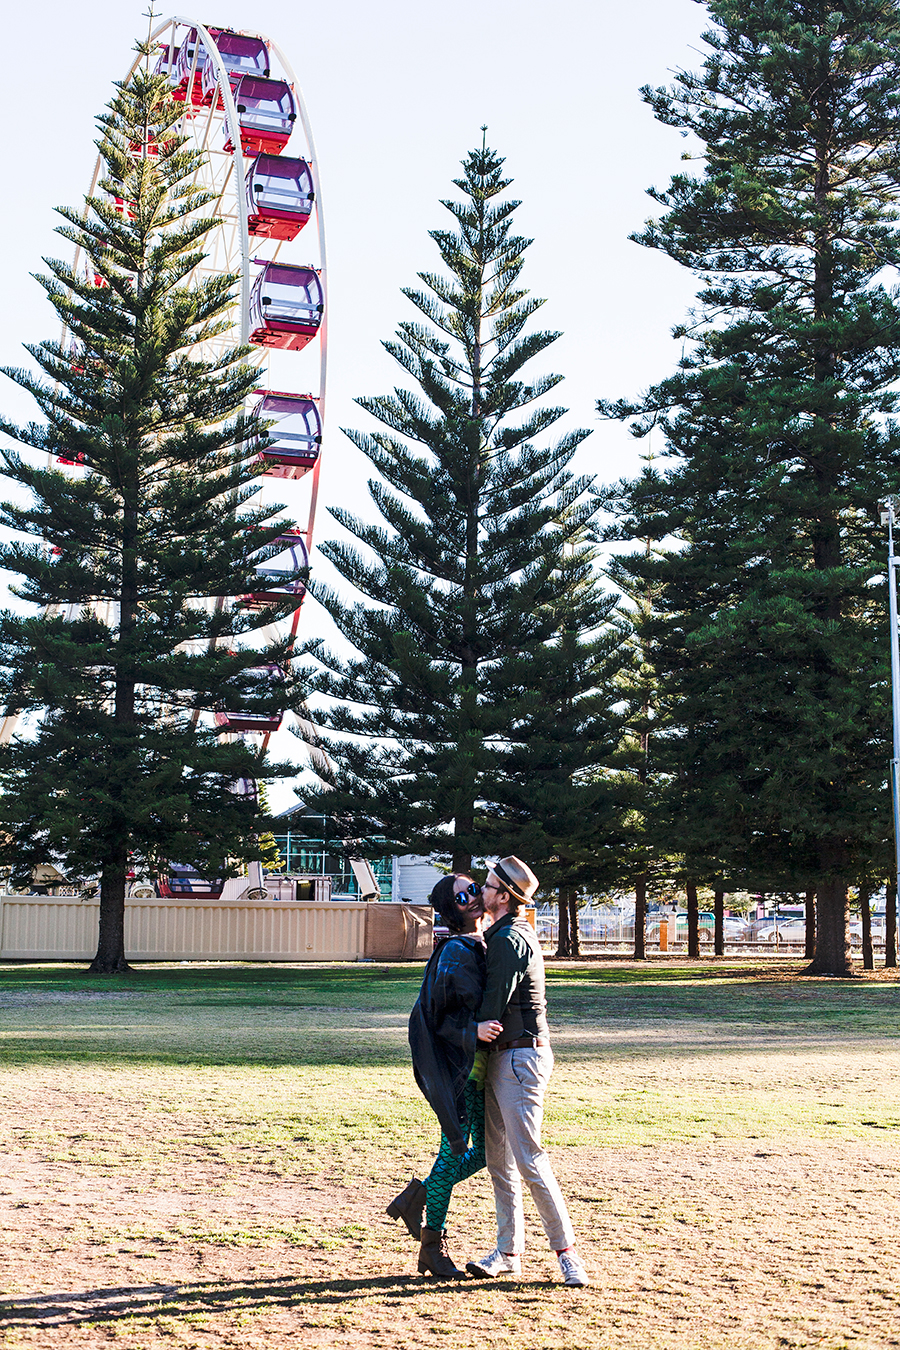 Couple photo in front of a ferris wheel Fremantle Perth Australia.